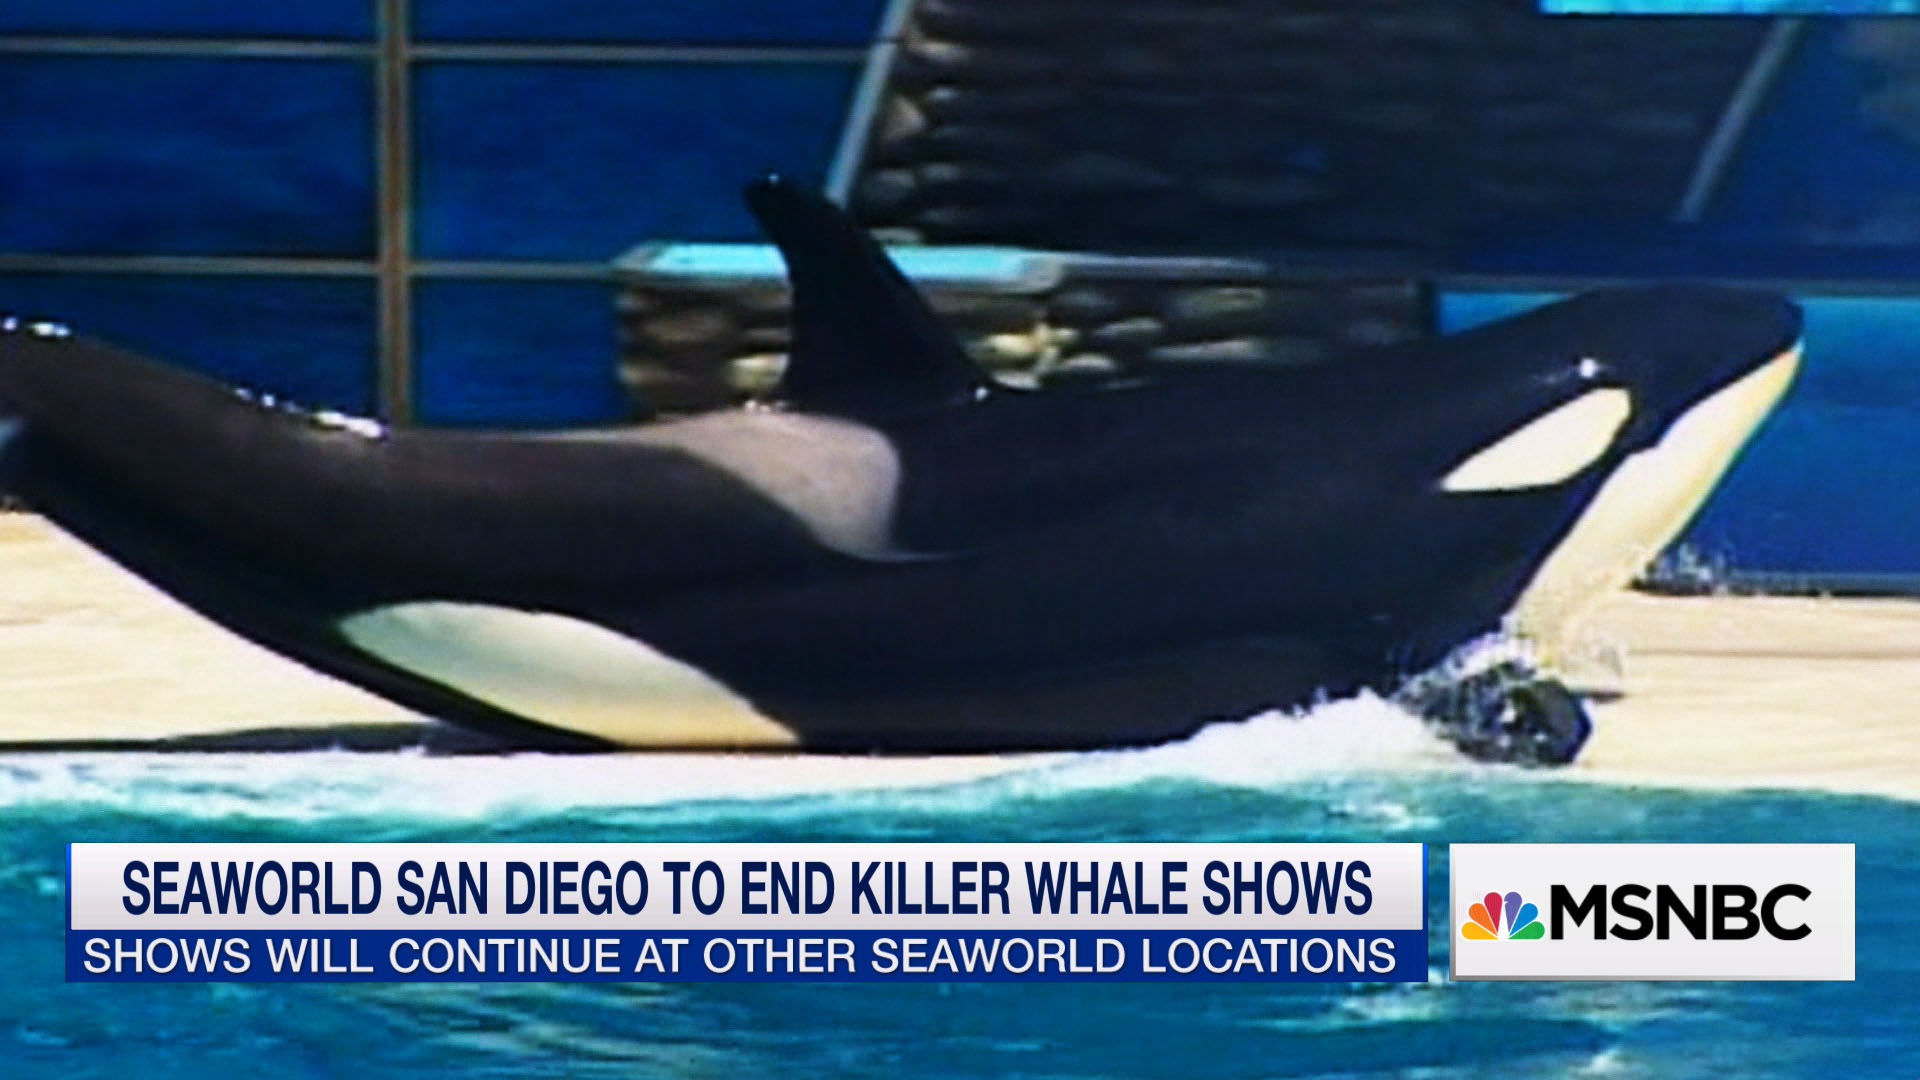 Is the end of killer whale shows enough?